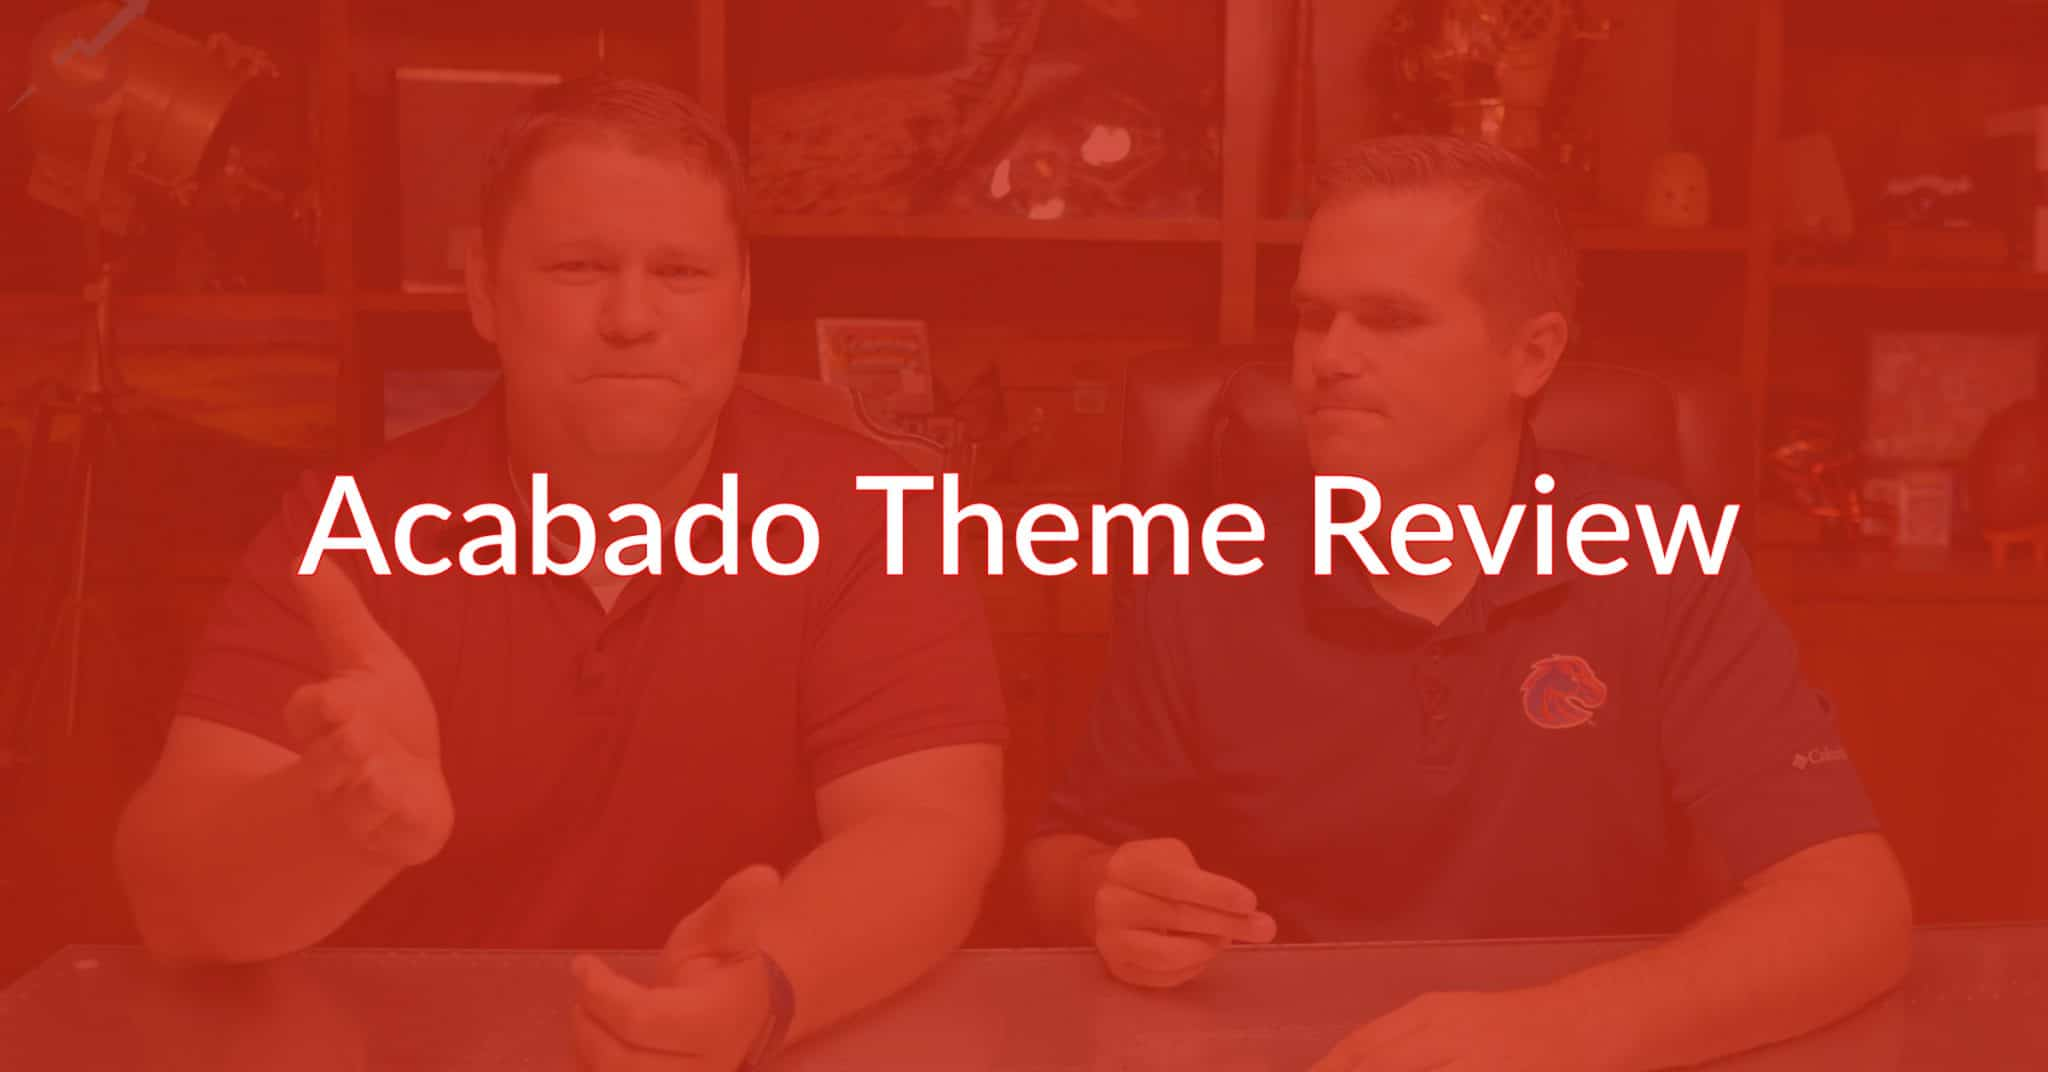 Acabado Theme Review: The Good, The Bad, And The Ugly